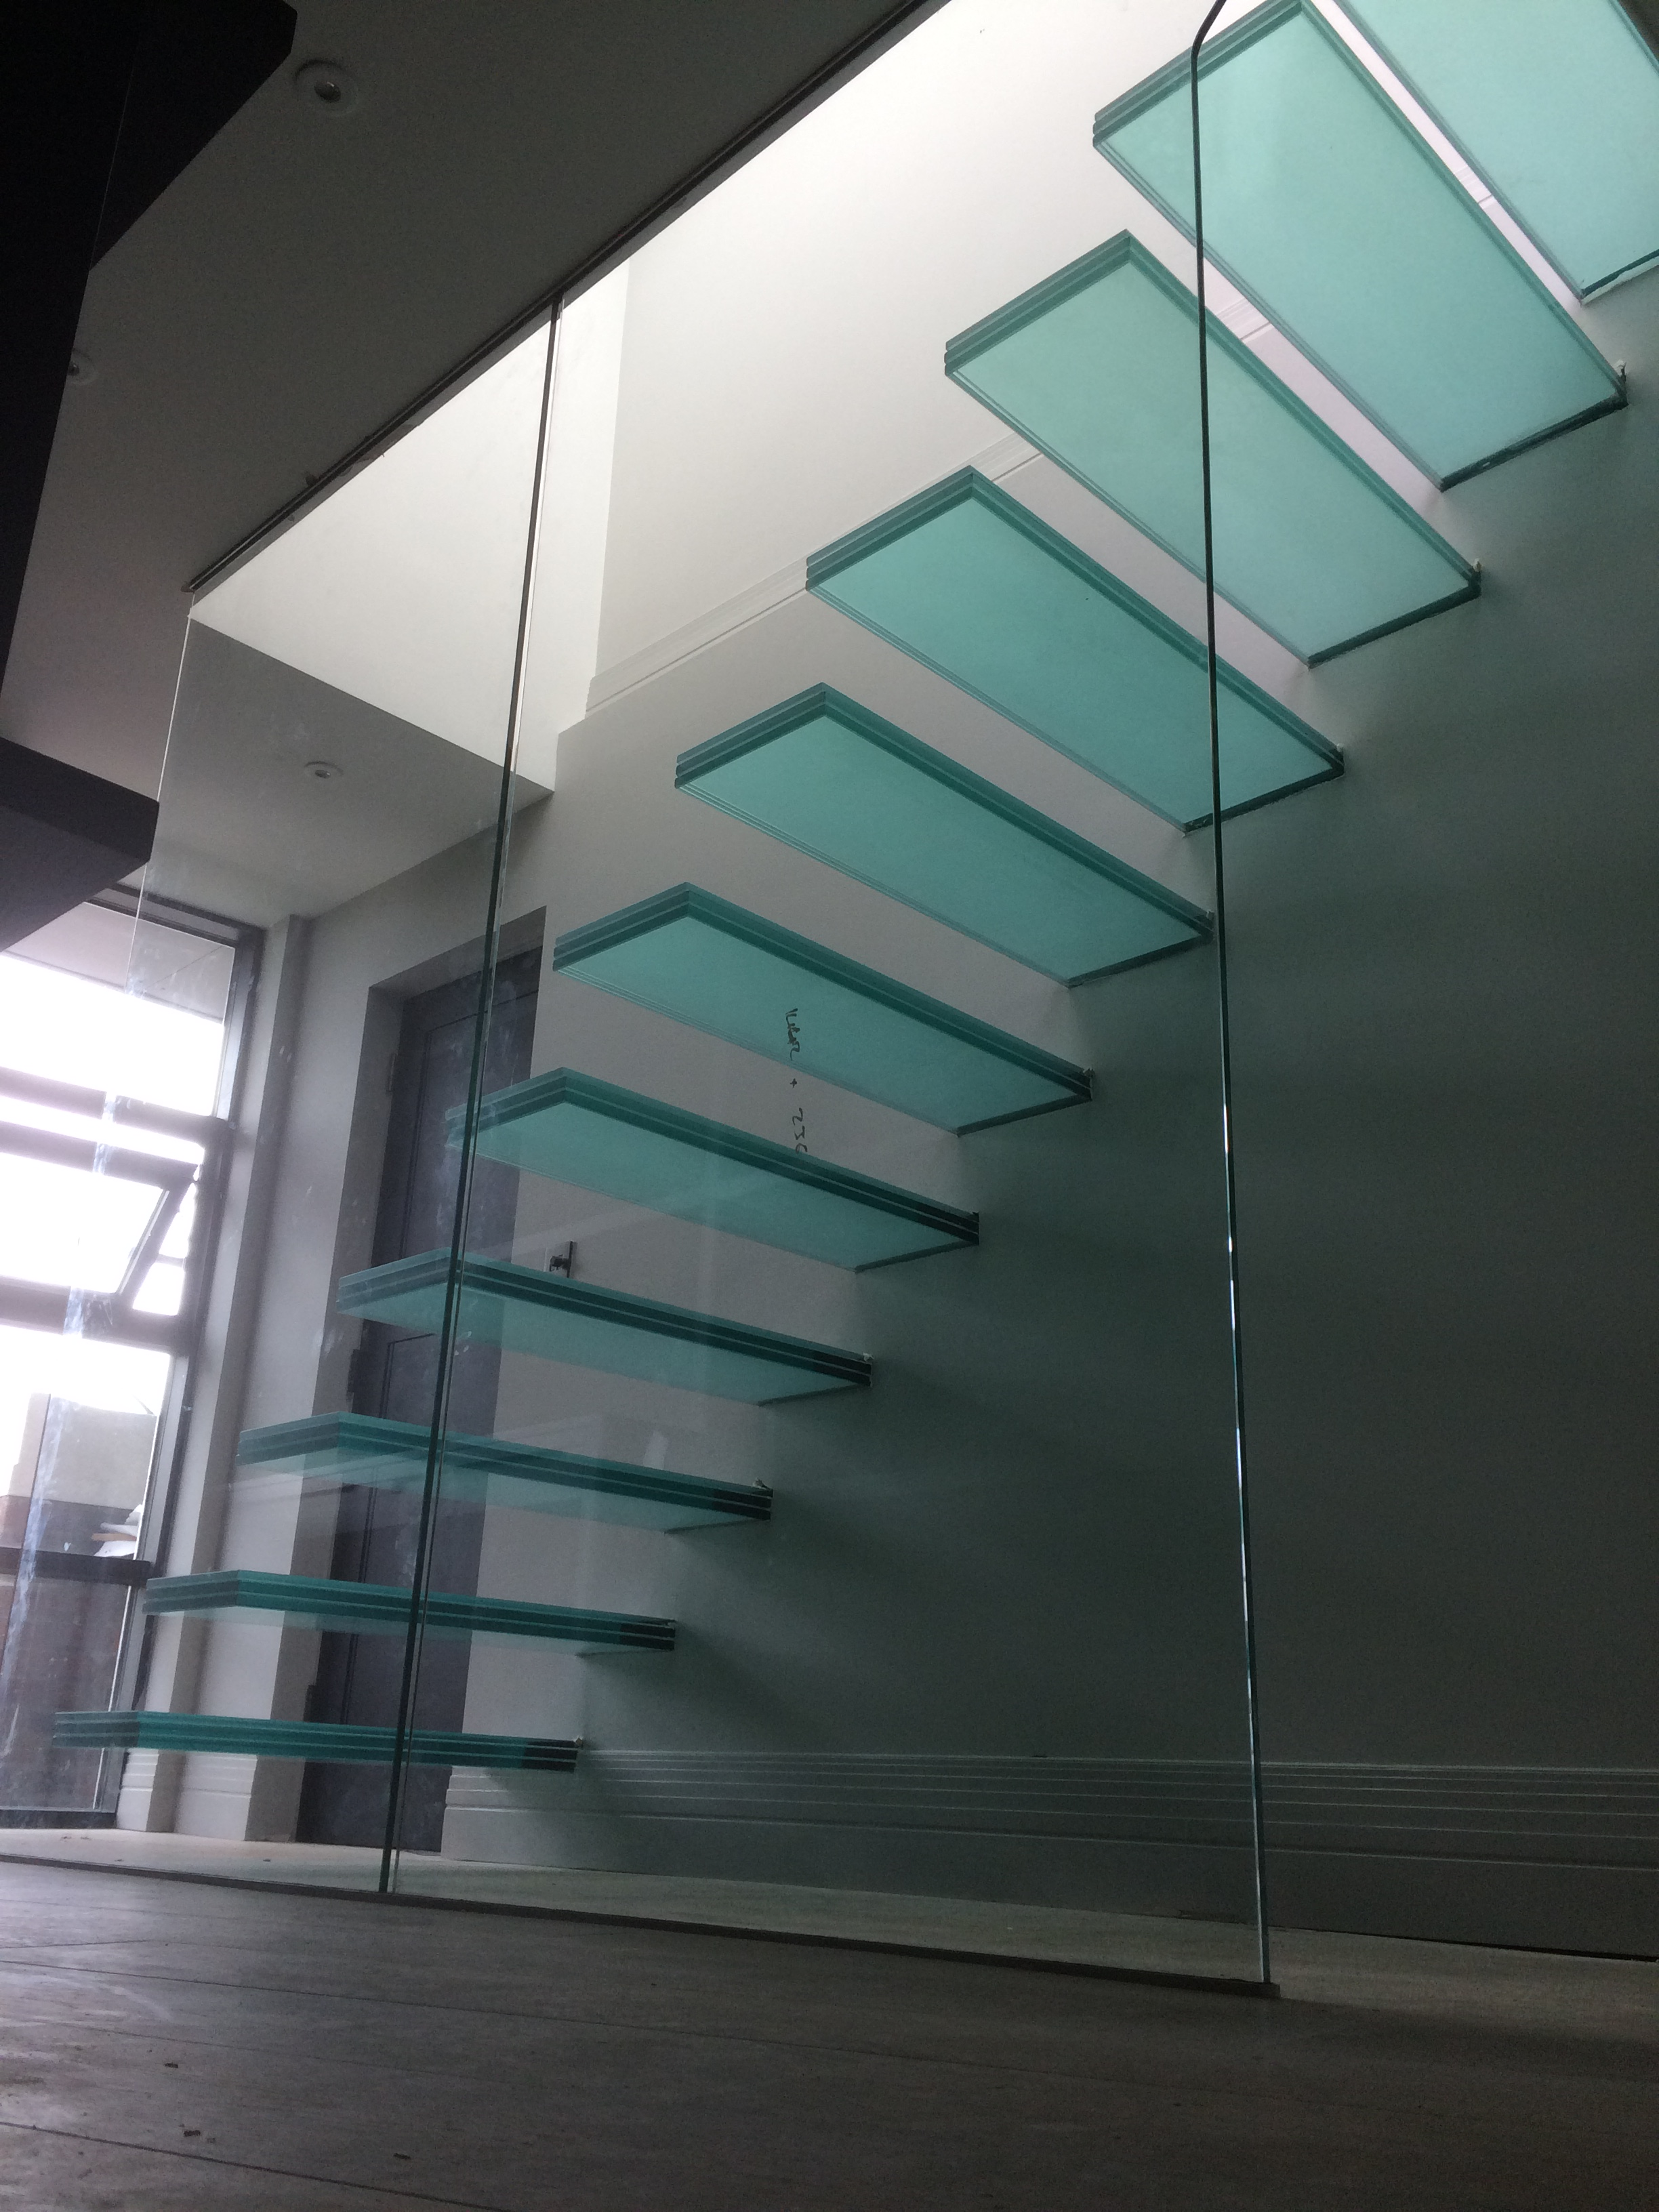 barons-keep-bespoke-floating-glass-cantilever-staircase (3